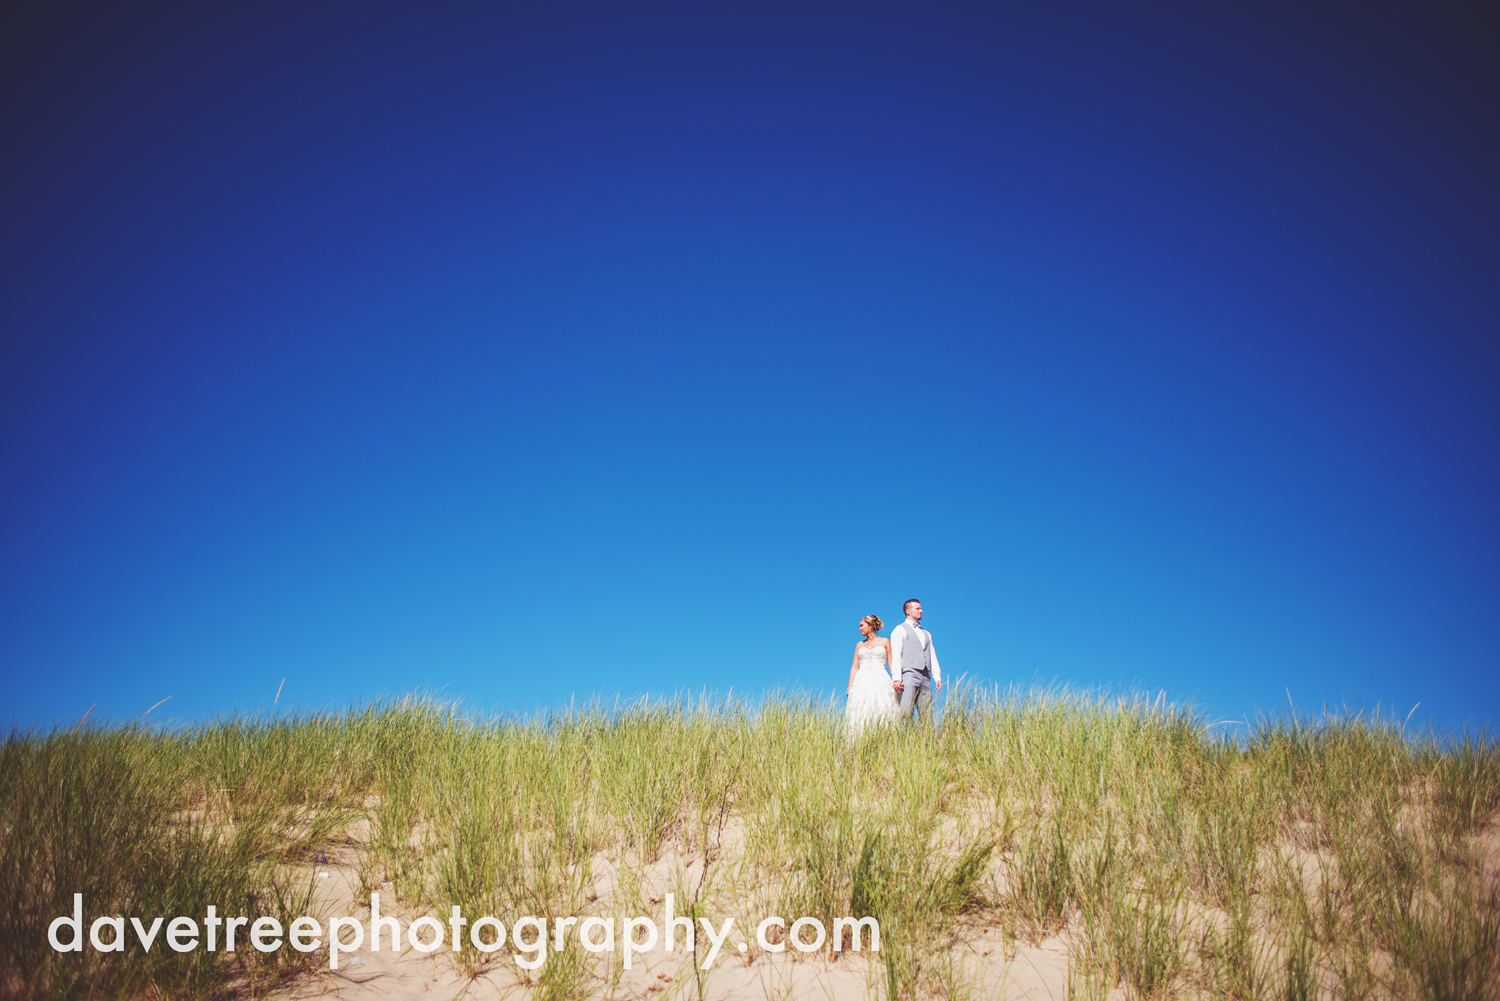 veranda_wedding_photographer_st_joseph_wedding_22.jpg